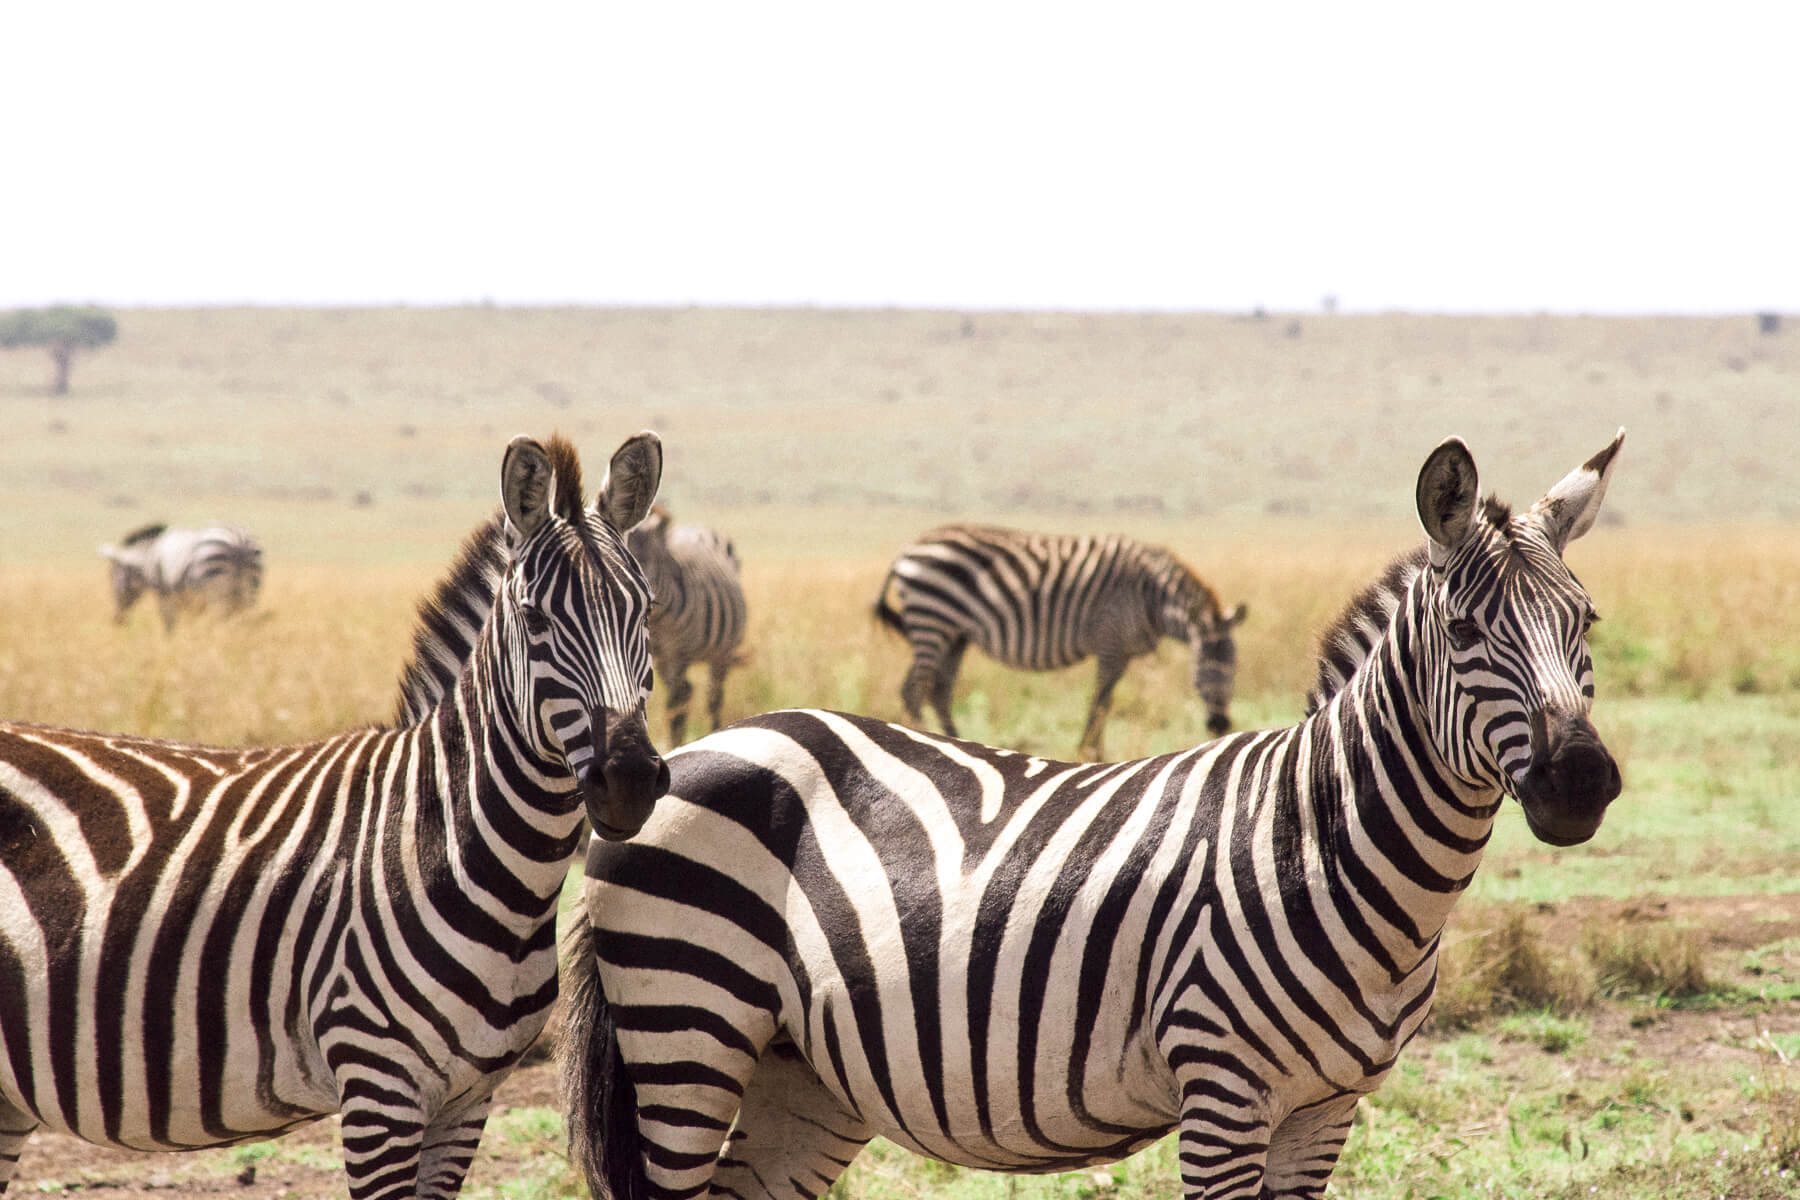 2 Zebras with their ears pricked in the Maasai Mara